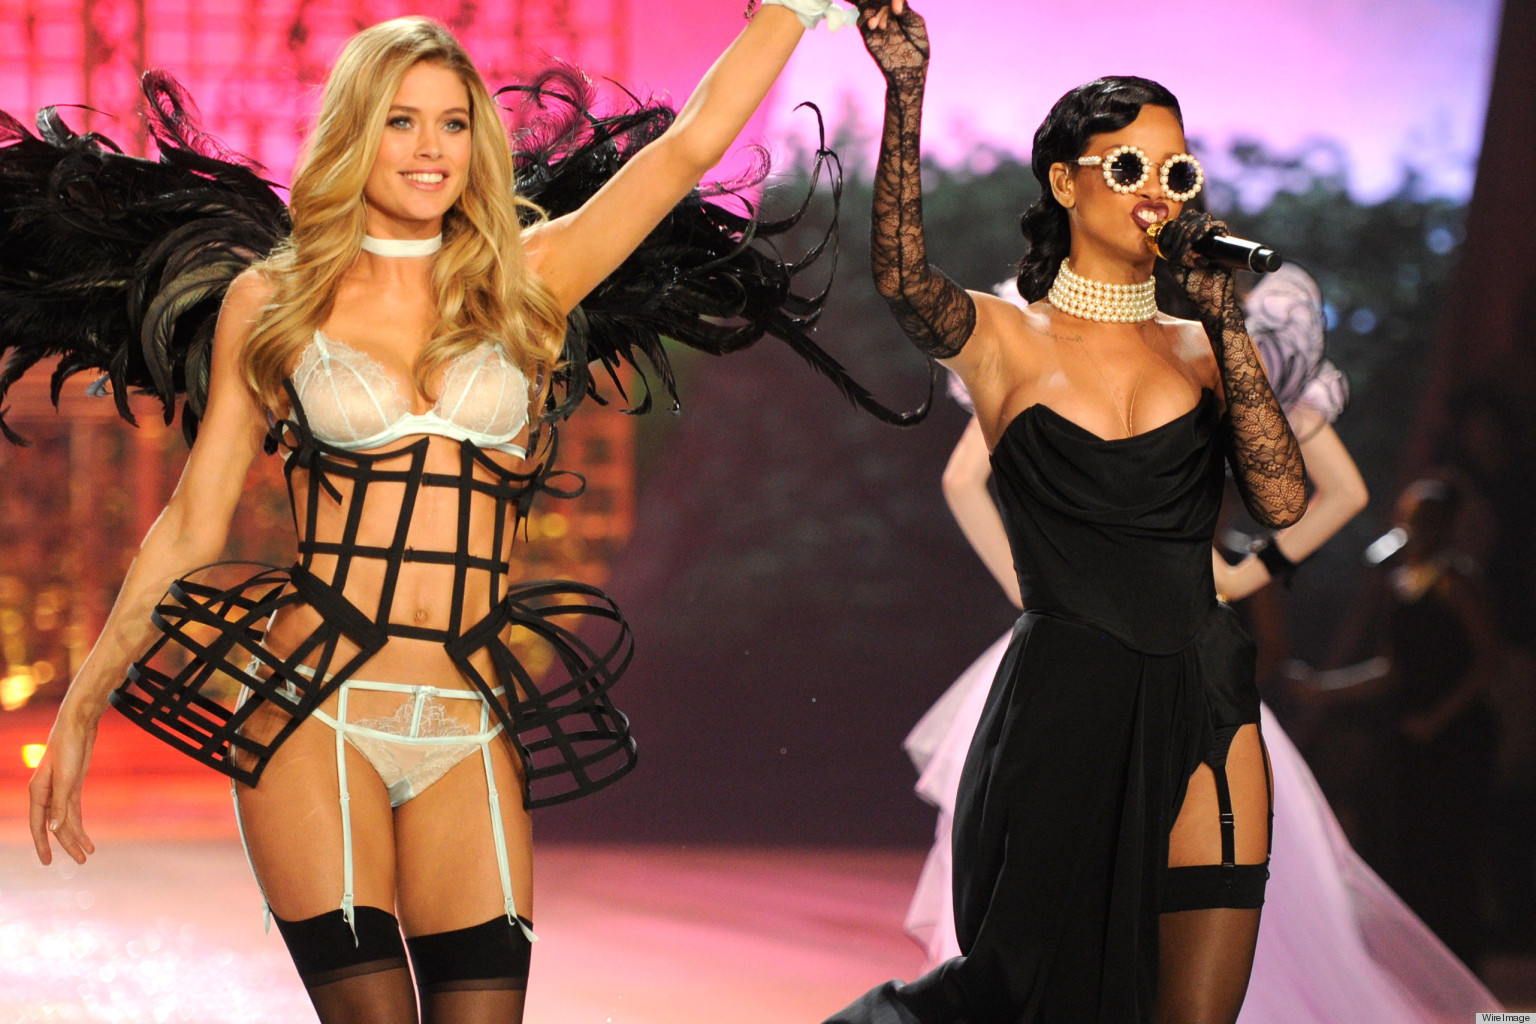 Victoria S Secret Fashion Show 2017 Rihanna Justin Bieber Perform Alongside The Angels Photos Huffpost